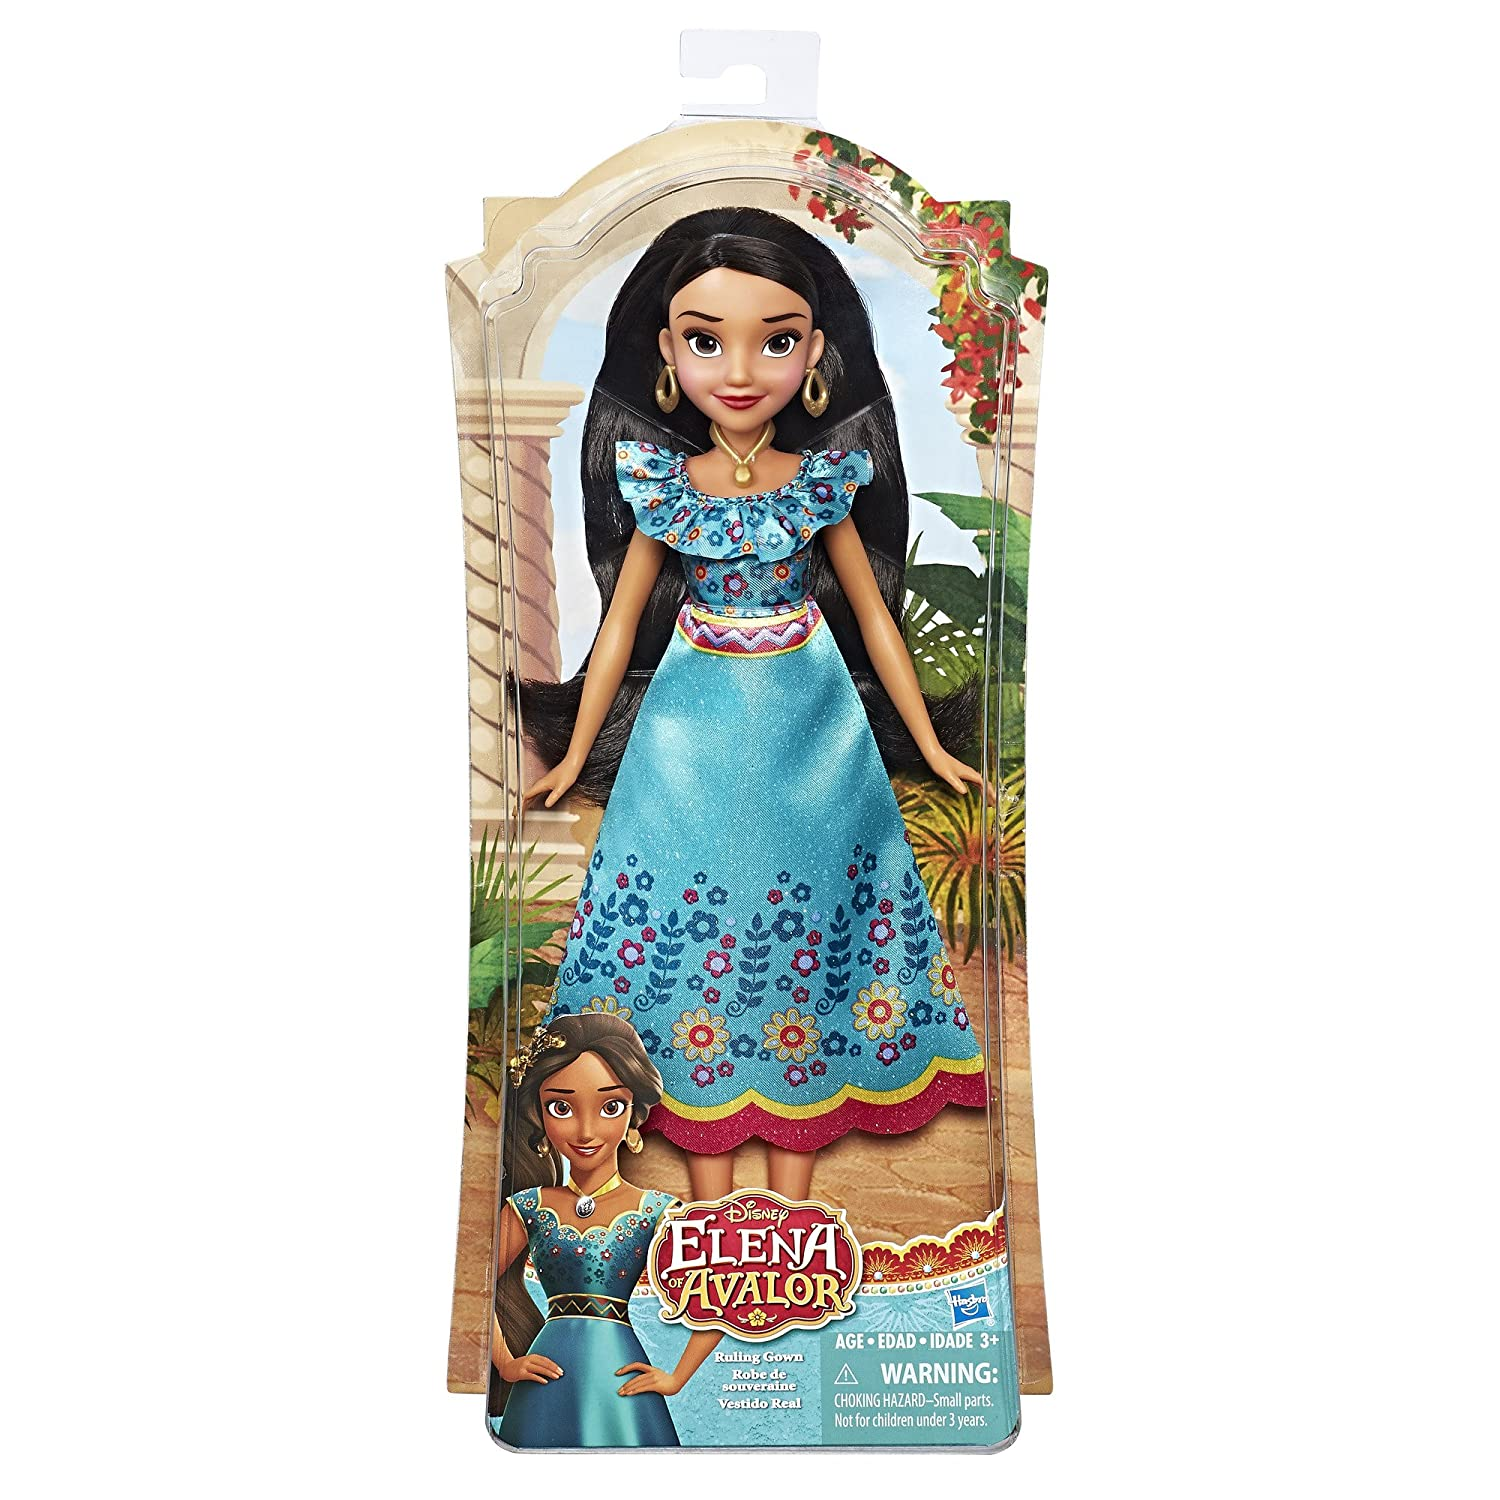 a2417635f99d Amazon.com: Disney Elena of Avalor Ruling Gown: Toys & Games